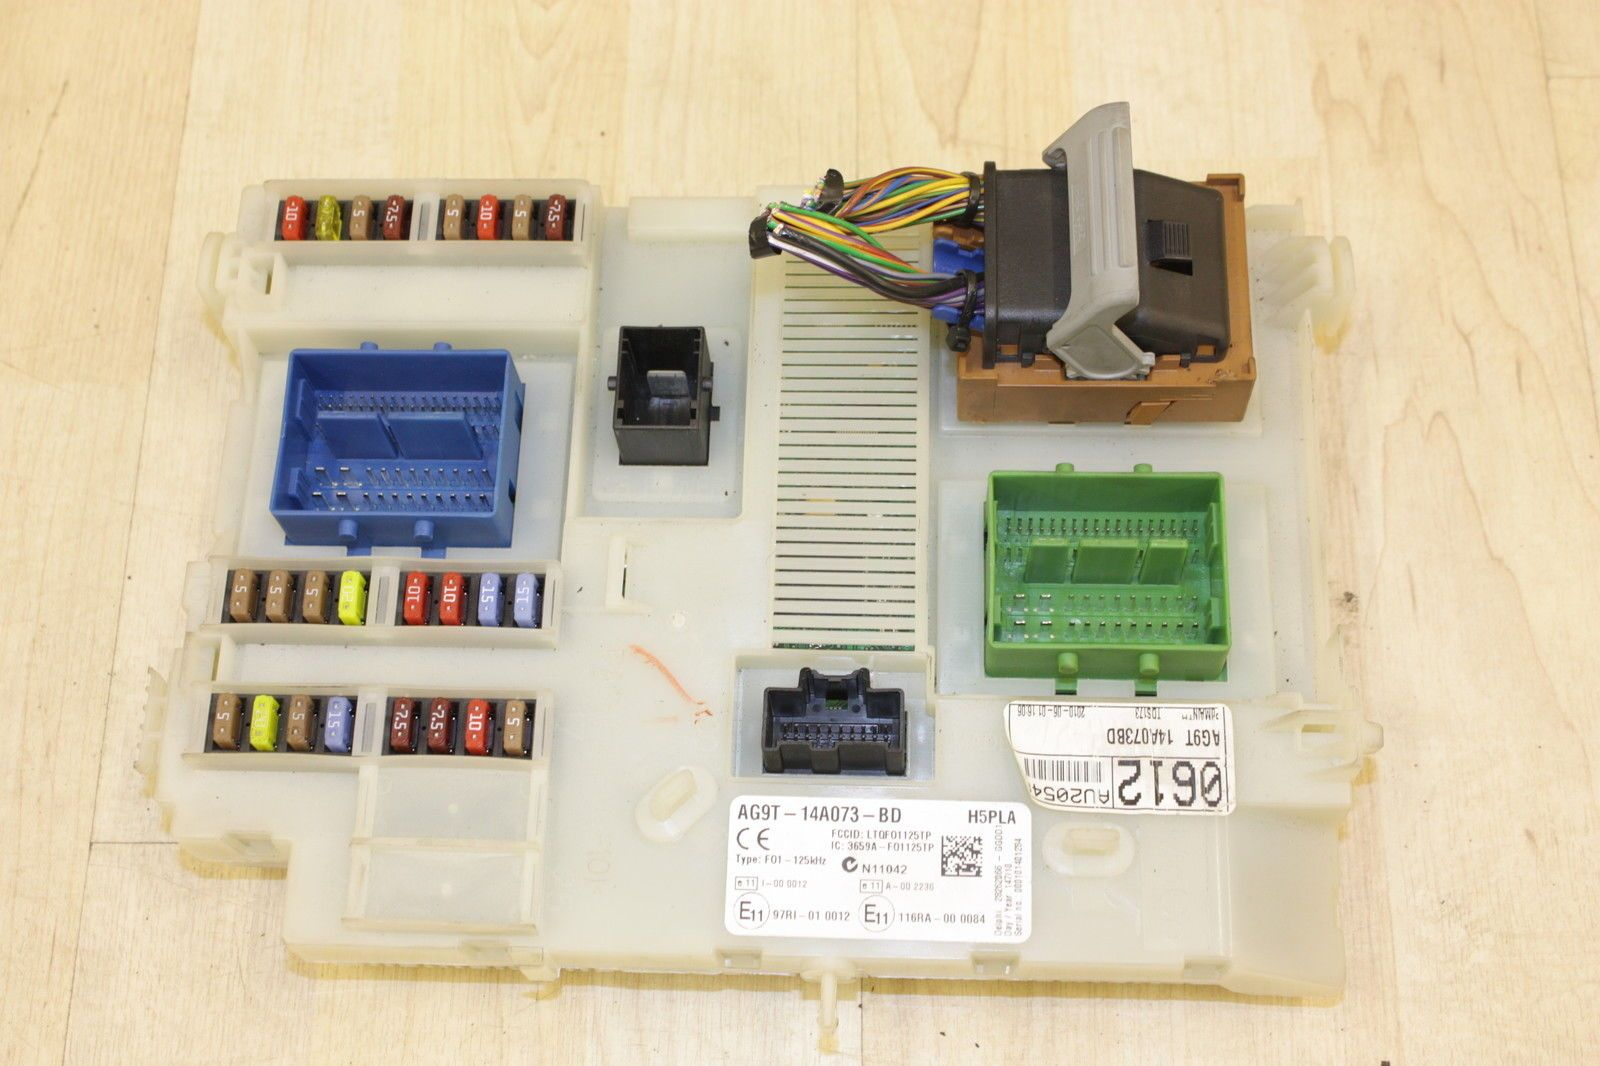 Fuse Box Ford Mondeo Mk4 Electrical Wiring Diagrams Fusion Uk Tdci Body Control Module Bcm Ag9t 14a073 Bd